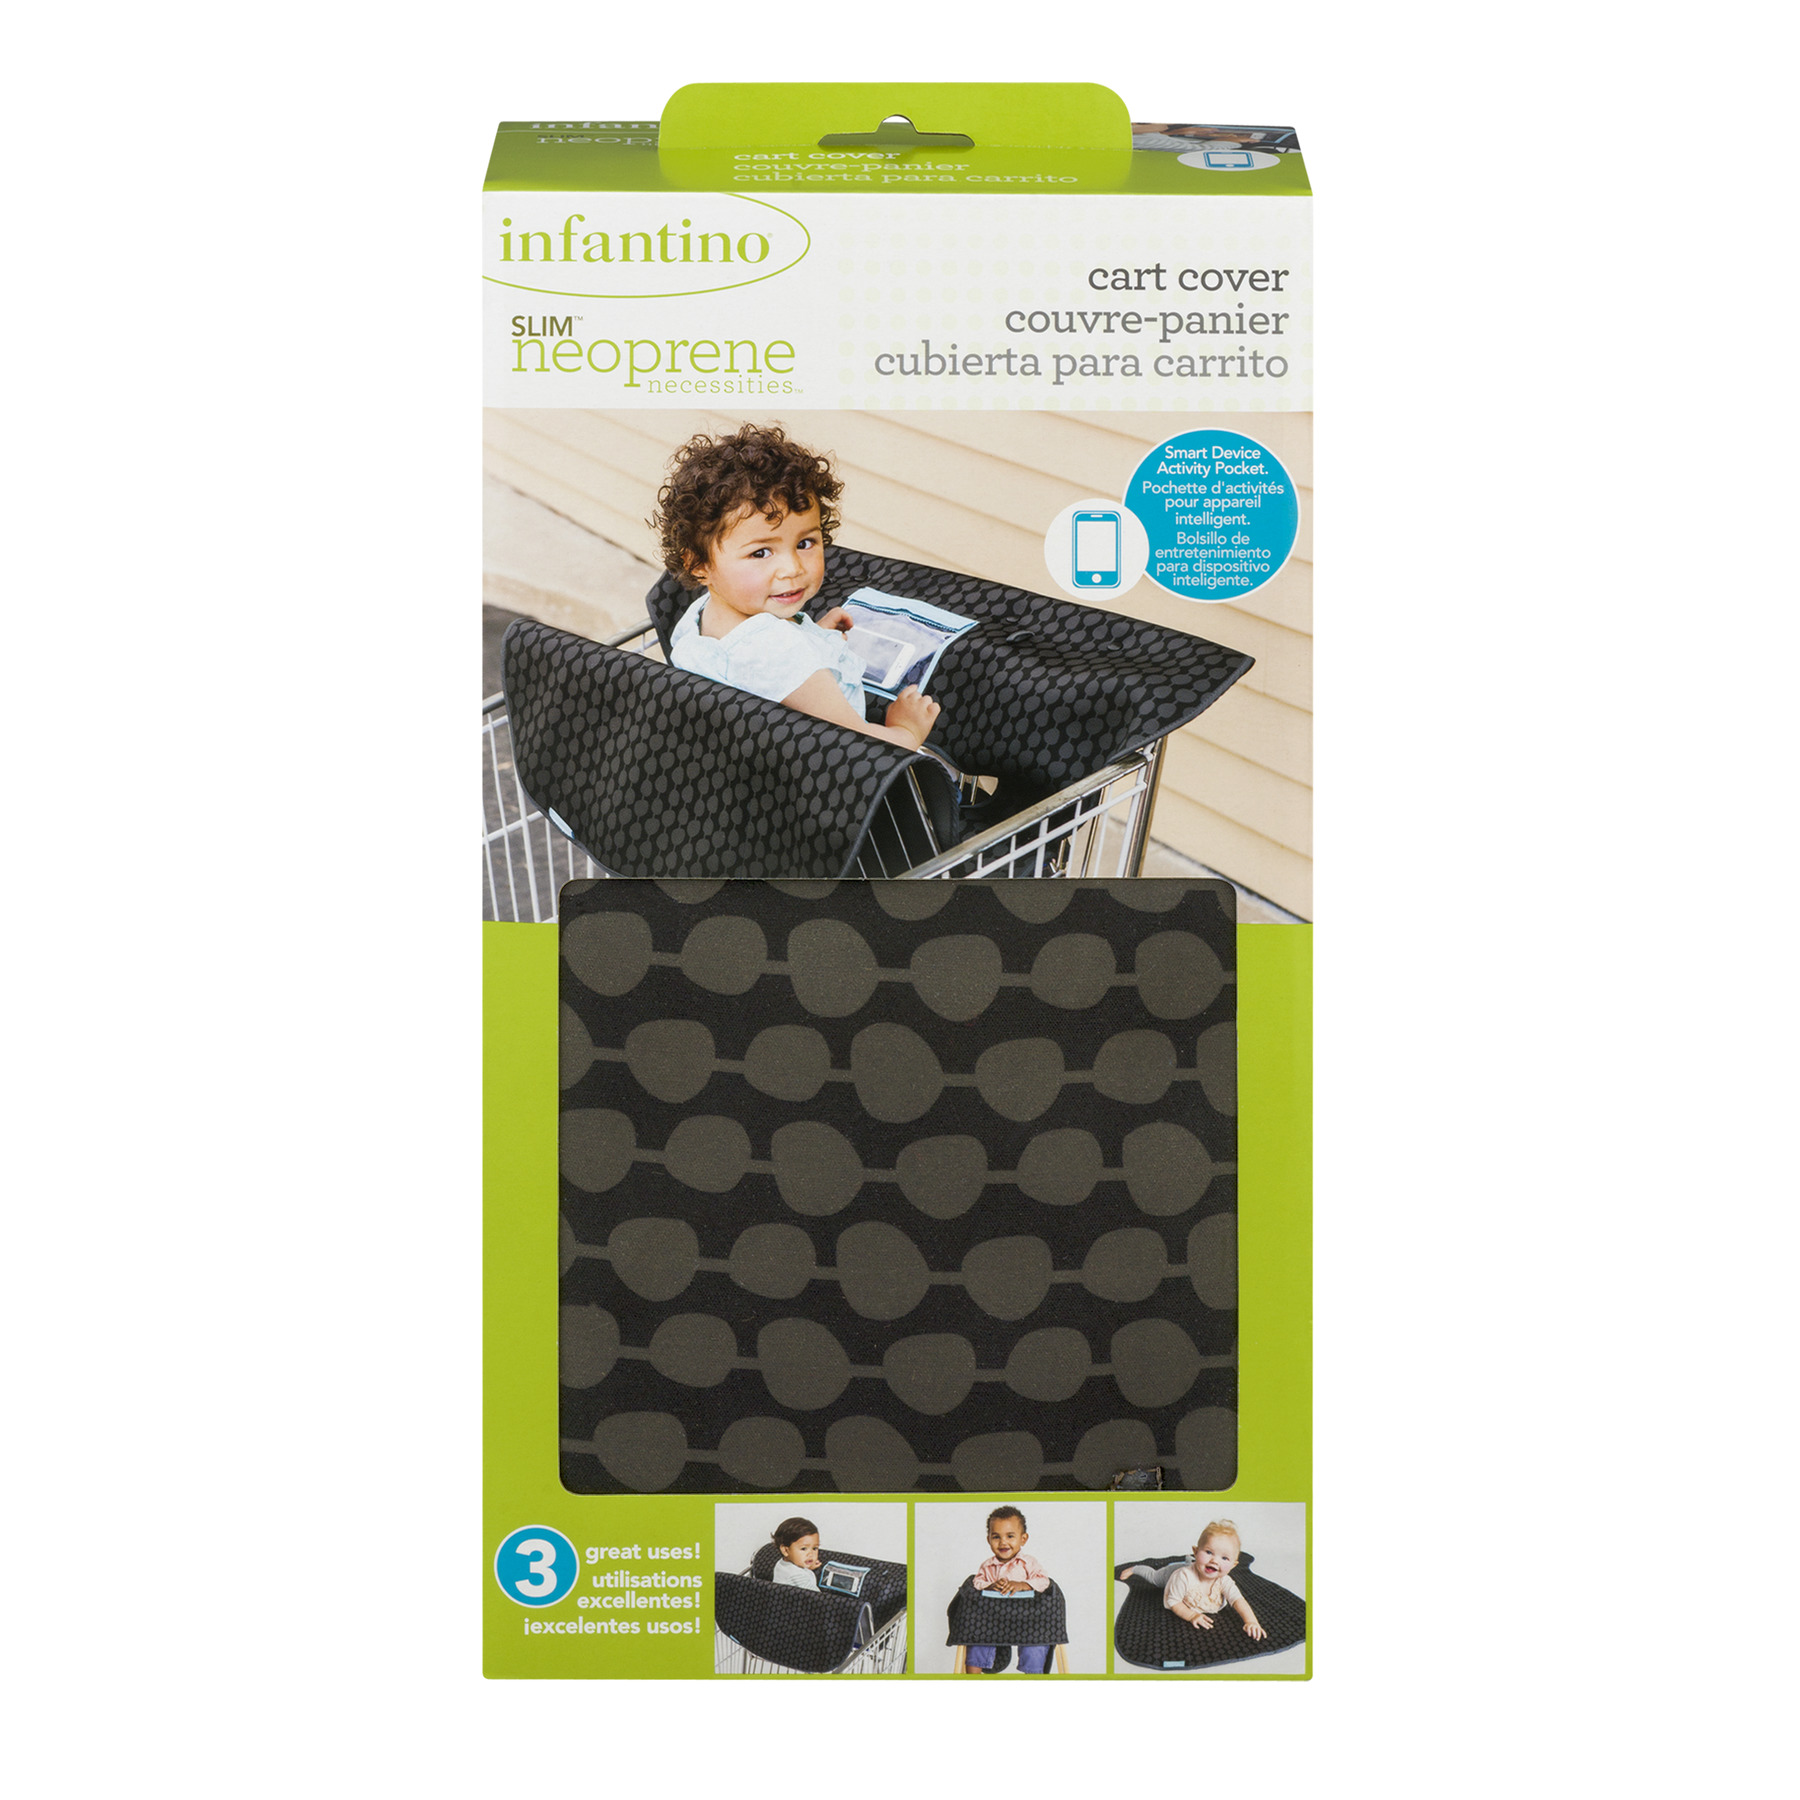 Infantino Cart Cover, 1.0 CT